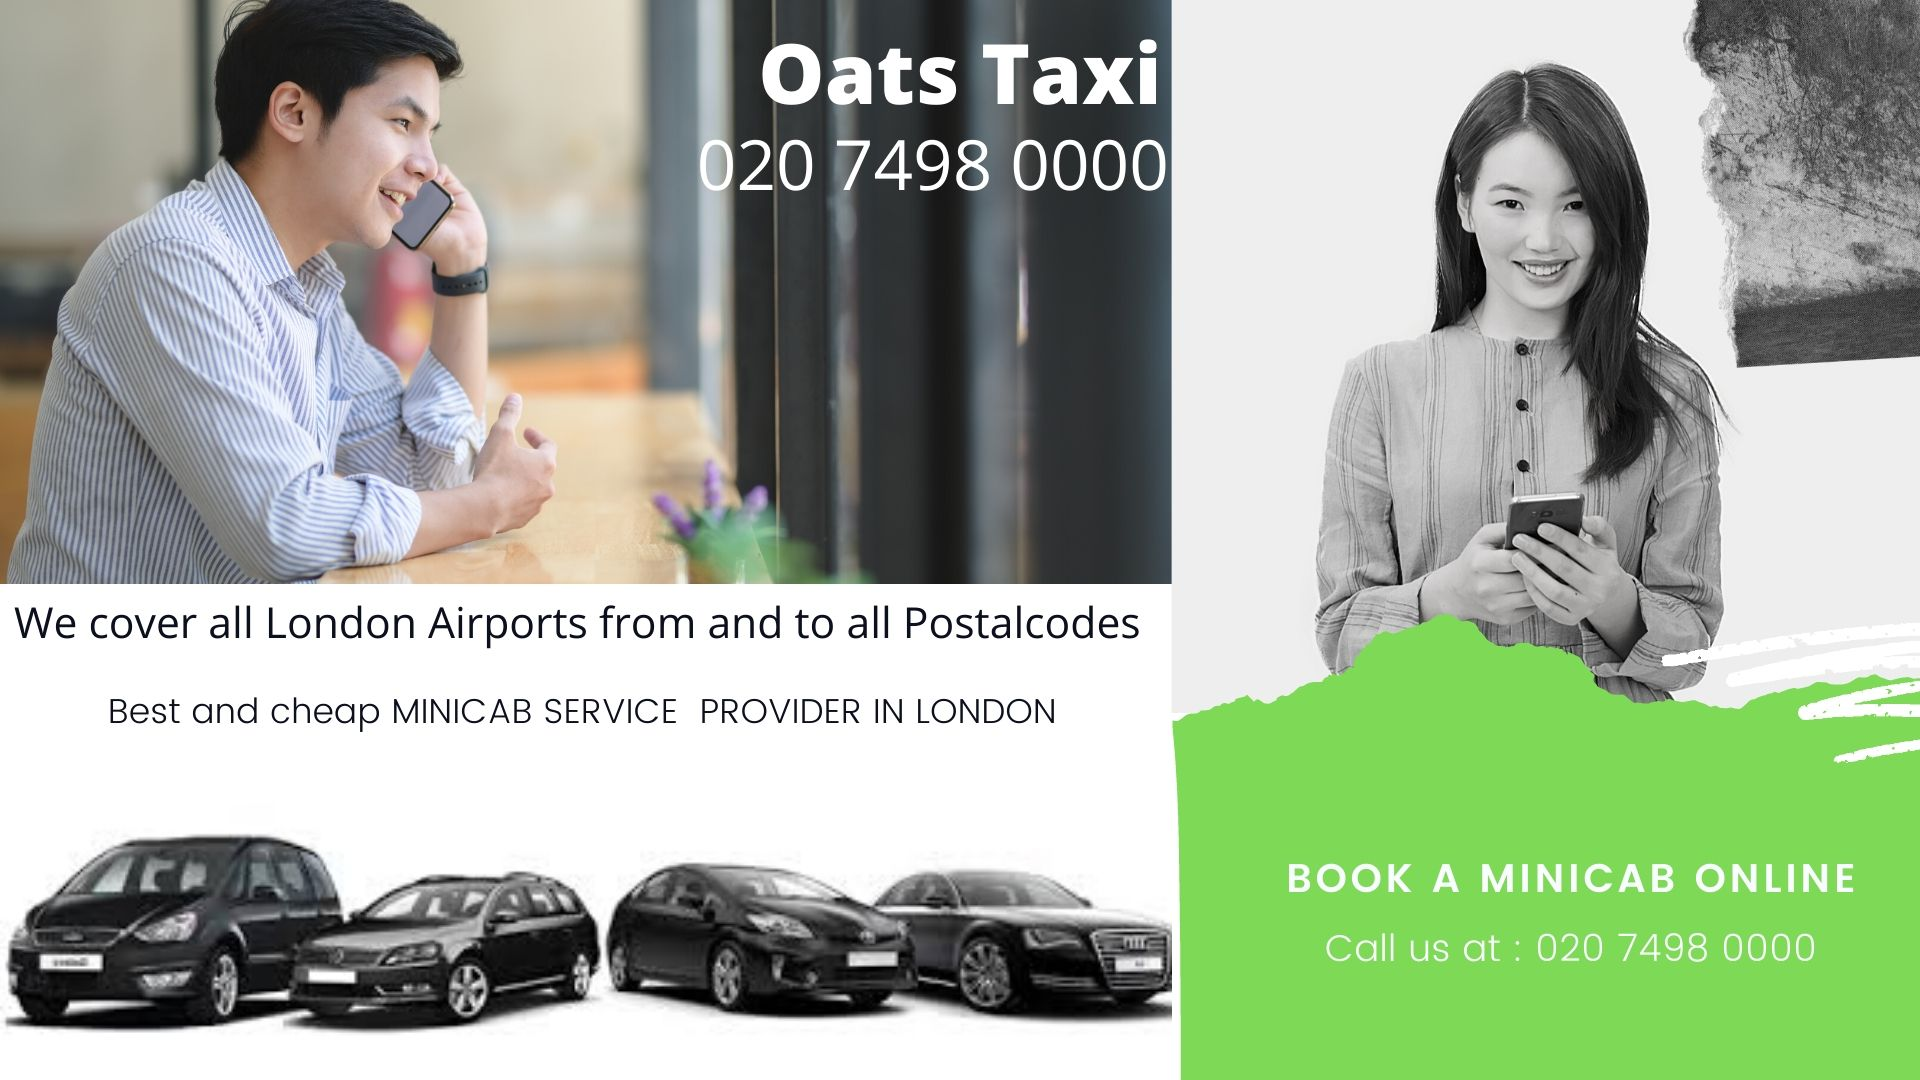 Minicab Office Near HENLEY STREET, Battersea SW11, Minicab From Battersea SW11 To Gatwick Airport